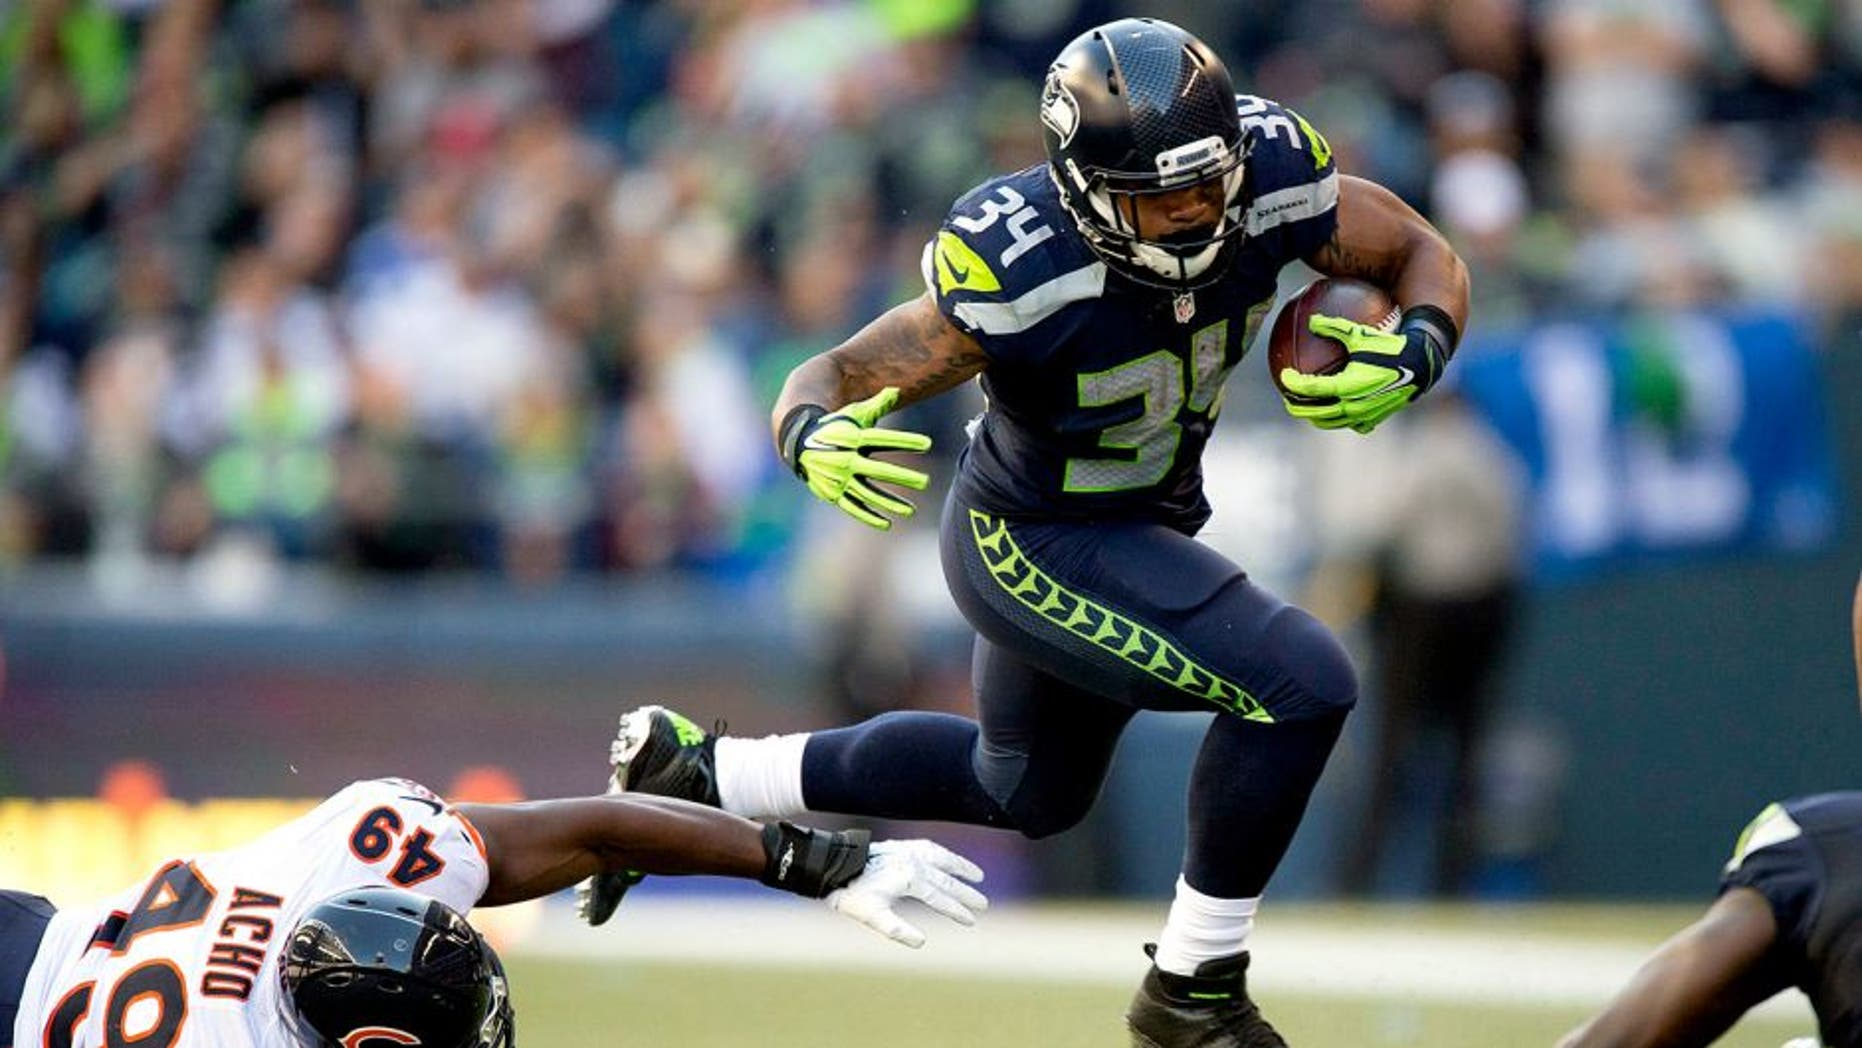 Sep 27, 2015; Seattle, WA, USA; Seattle Seahawks running back Thomas Rawls (34) breaks away from Chicago Bears linebacker Sam Acho (49) during the third quarter at CenturyLink Field. The Seahawks won 26-0. Mandatory Credit: Troy Wayrynen-USA TODAY Sports